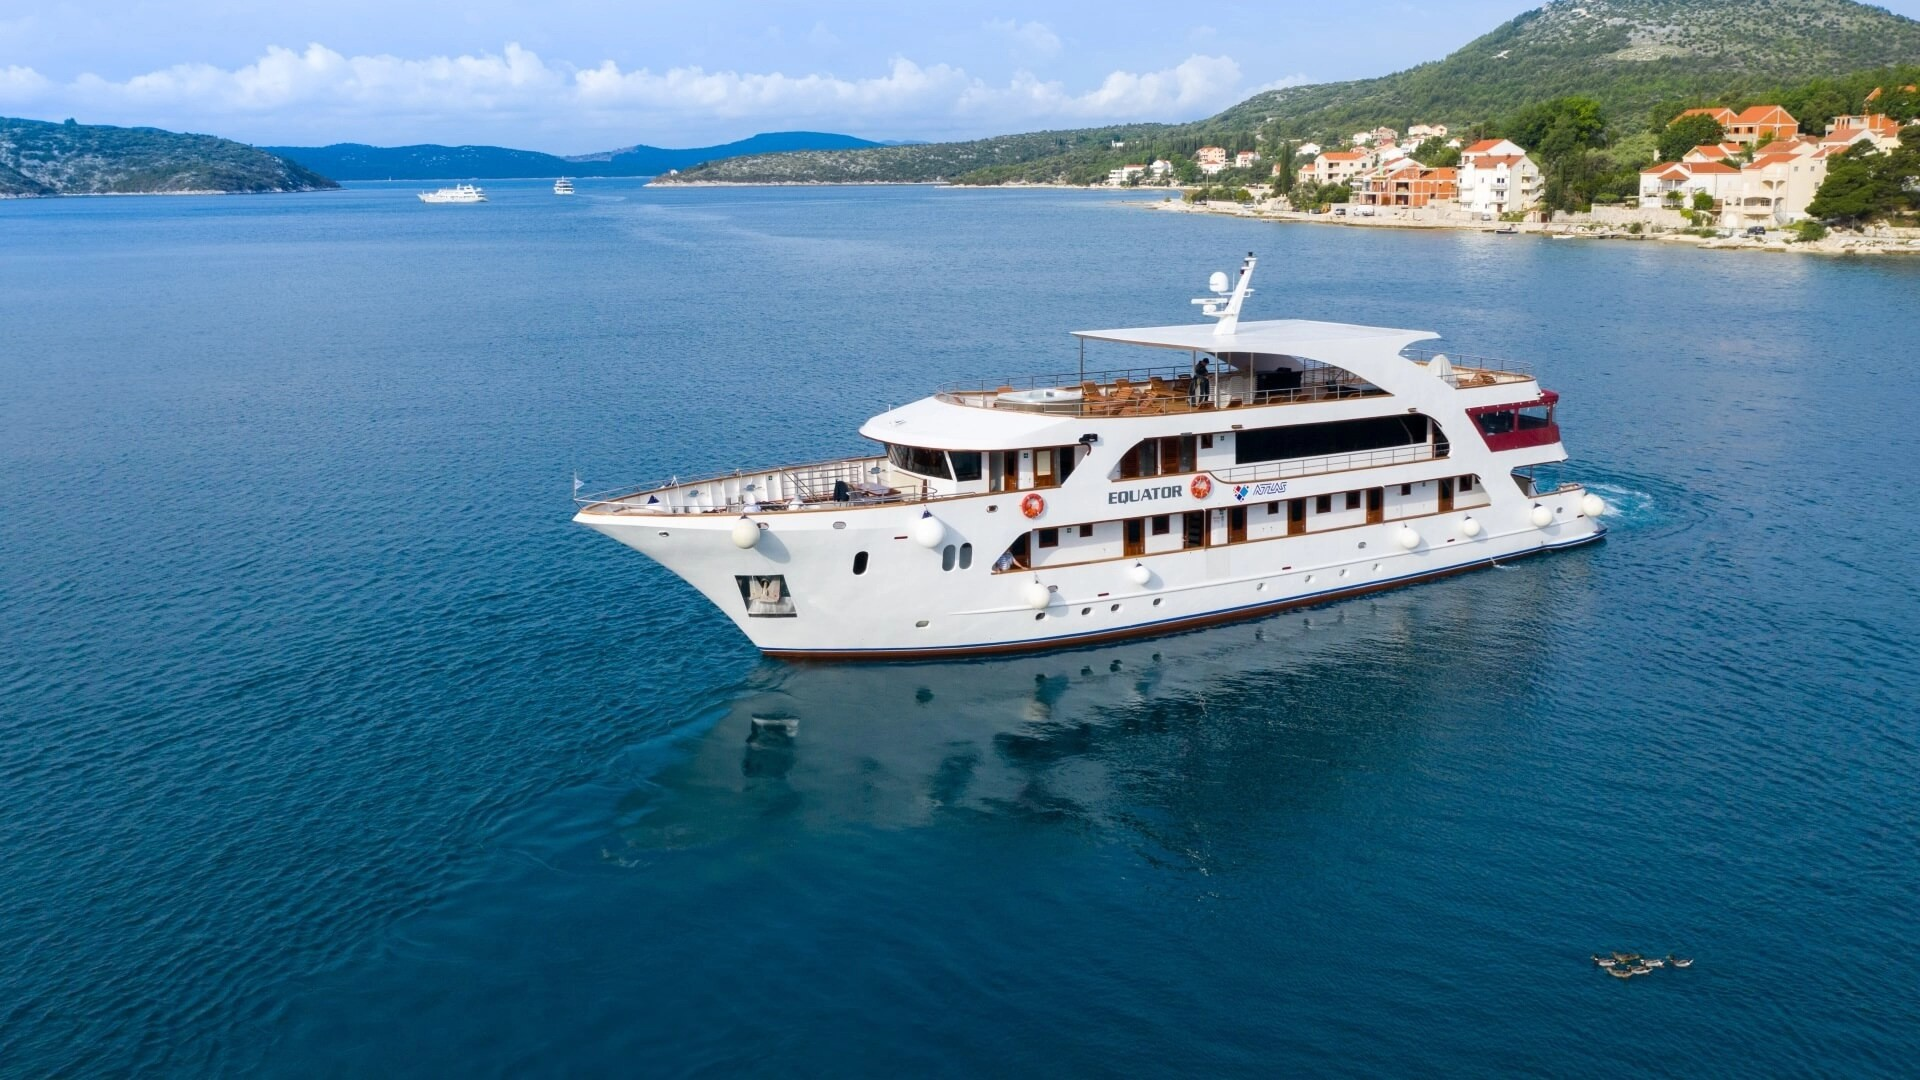 Equator: Dubrovnik to Dubrovnik | Cruise & Stay 2021